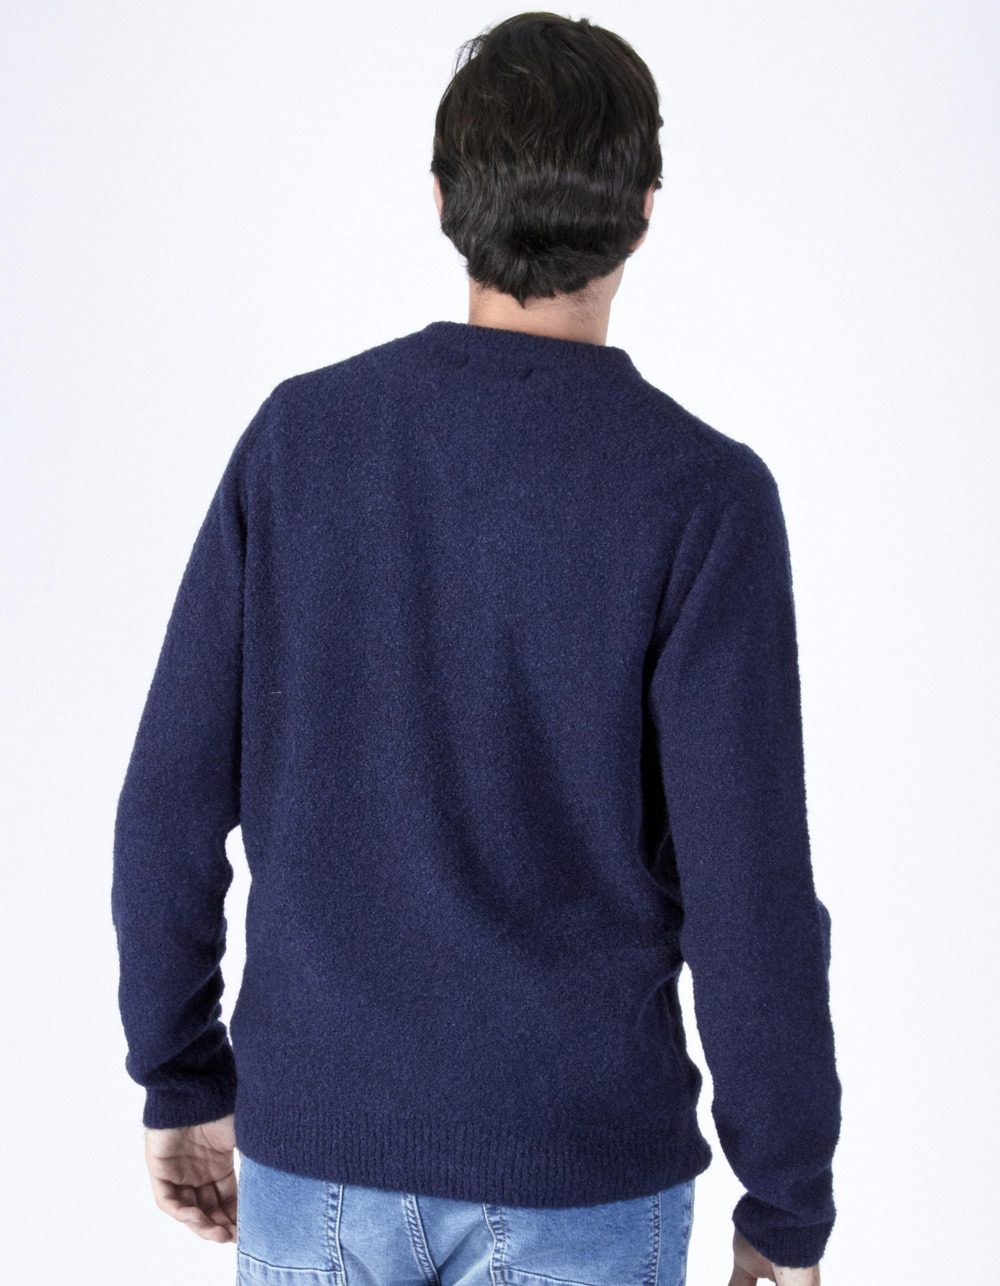 Navy blue round collar sweater - Backside